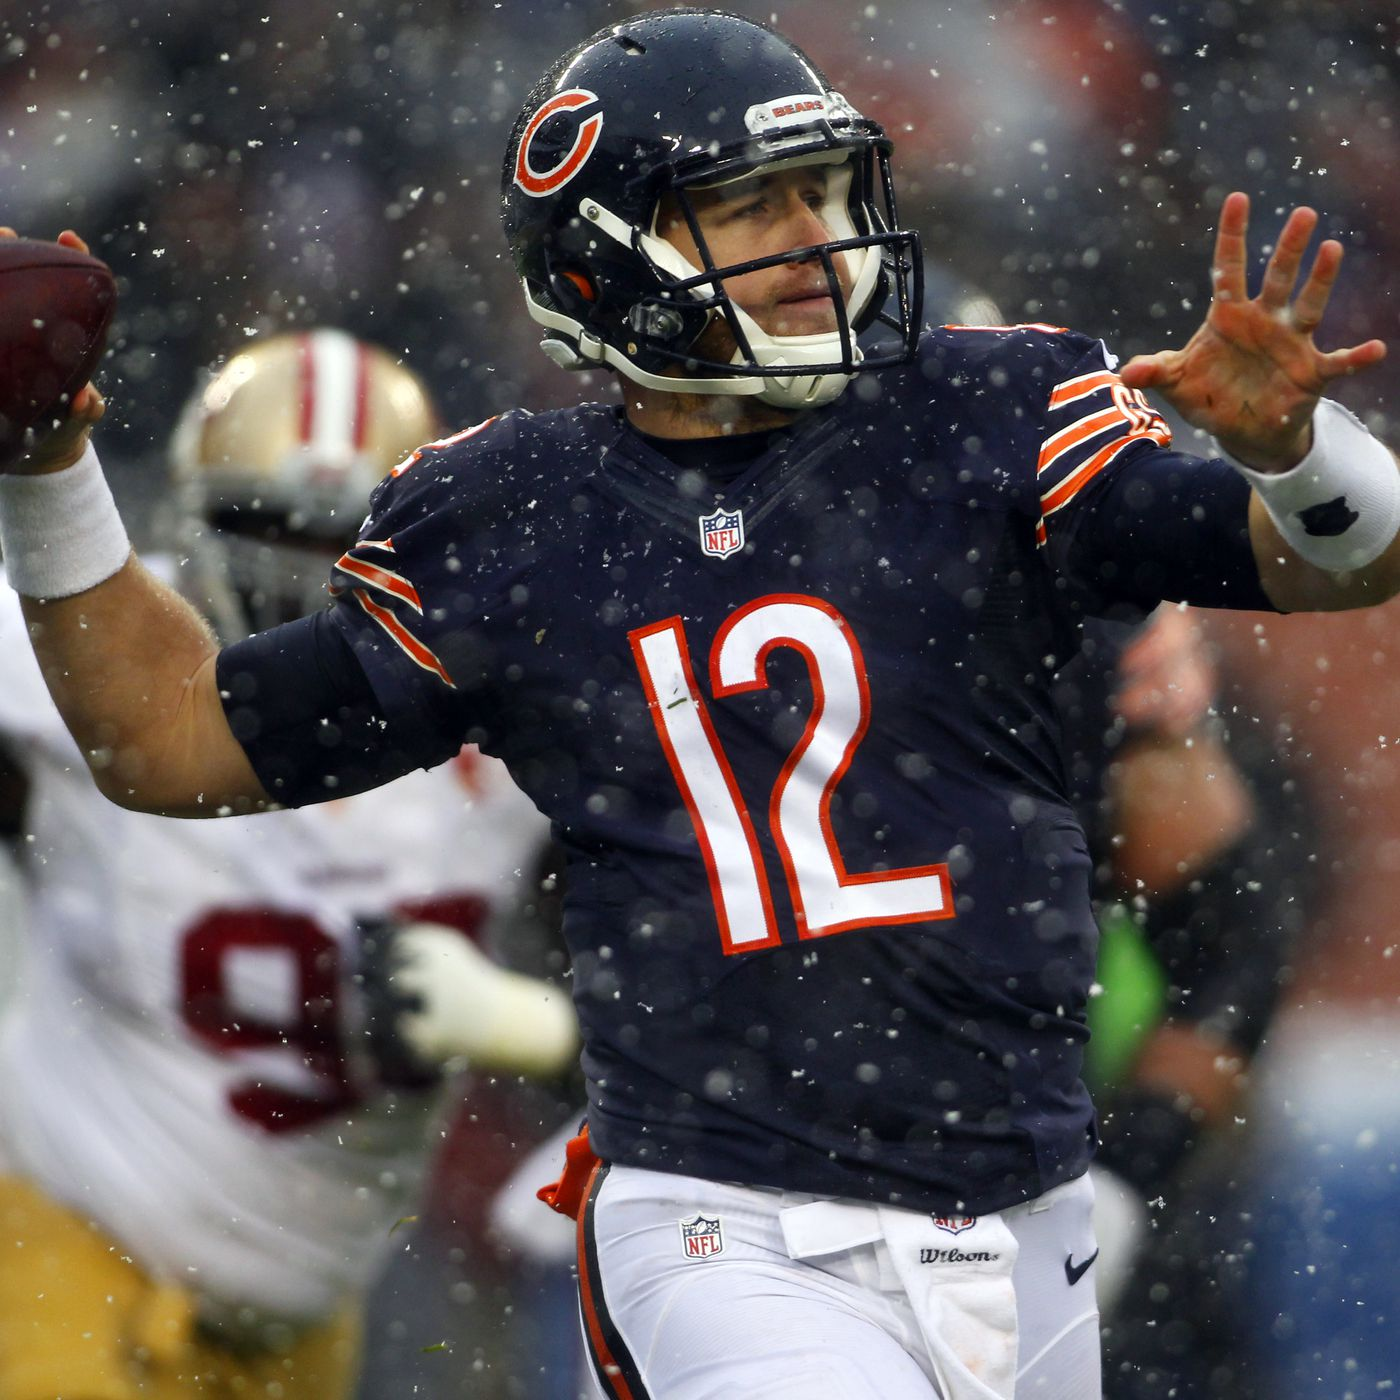 b56cec734a6 Matt Barkley will wear a wetsuit under his jersey to stay warm during  Packers vs. Bears